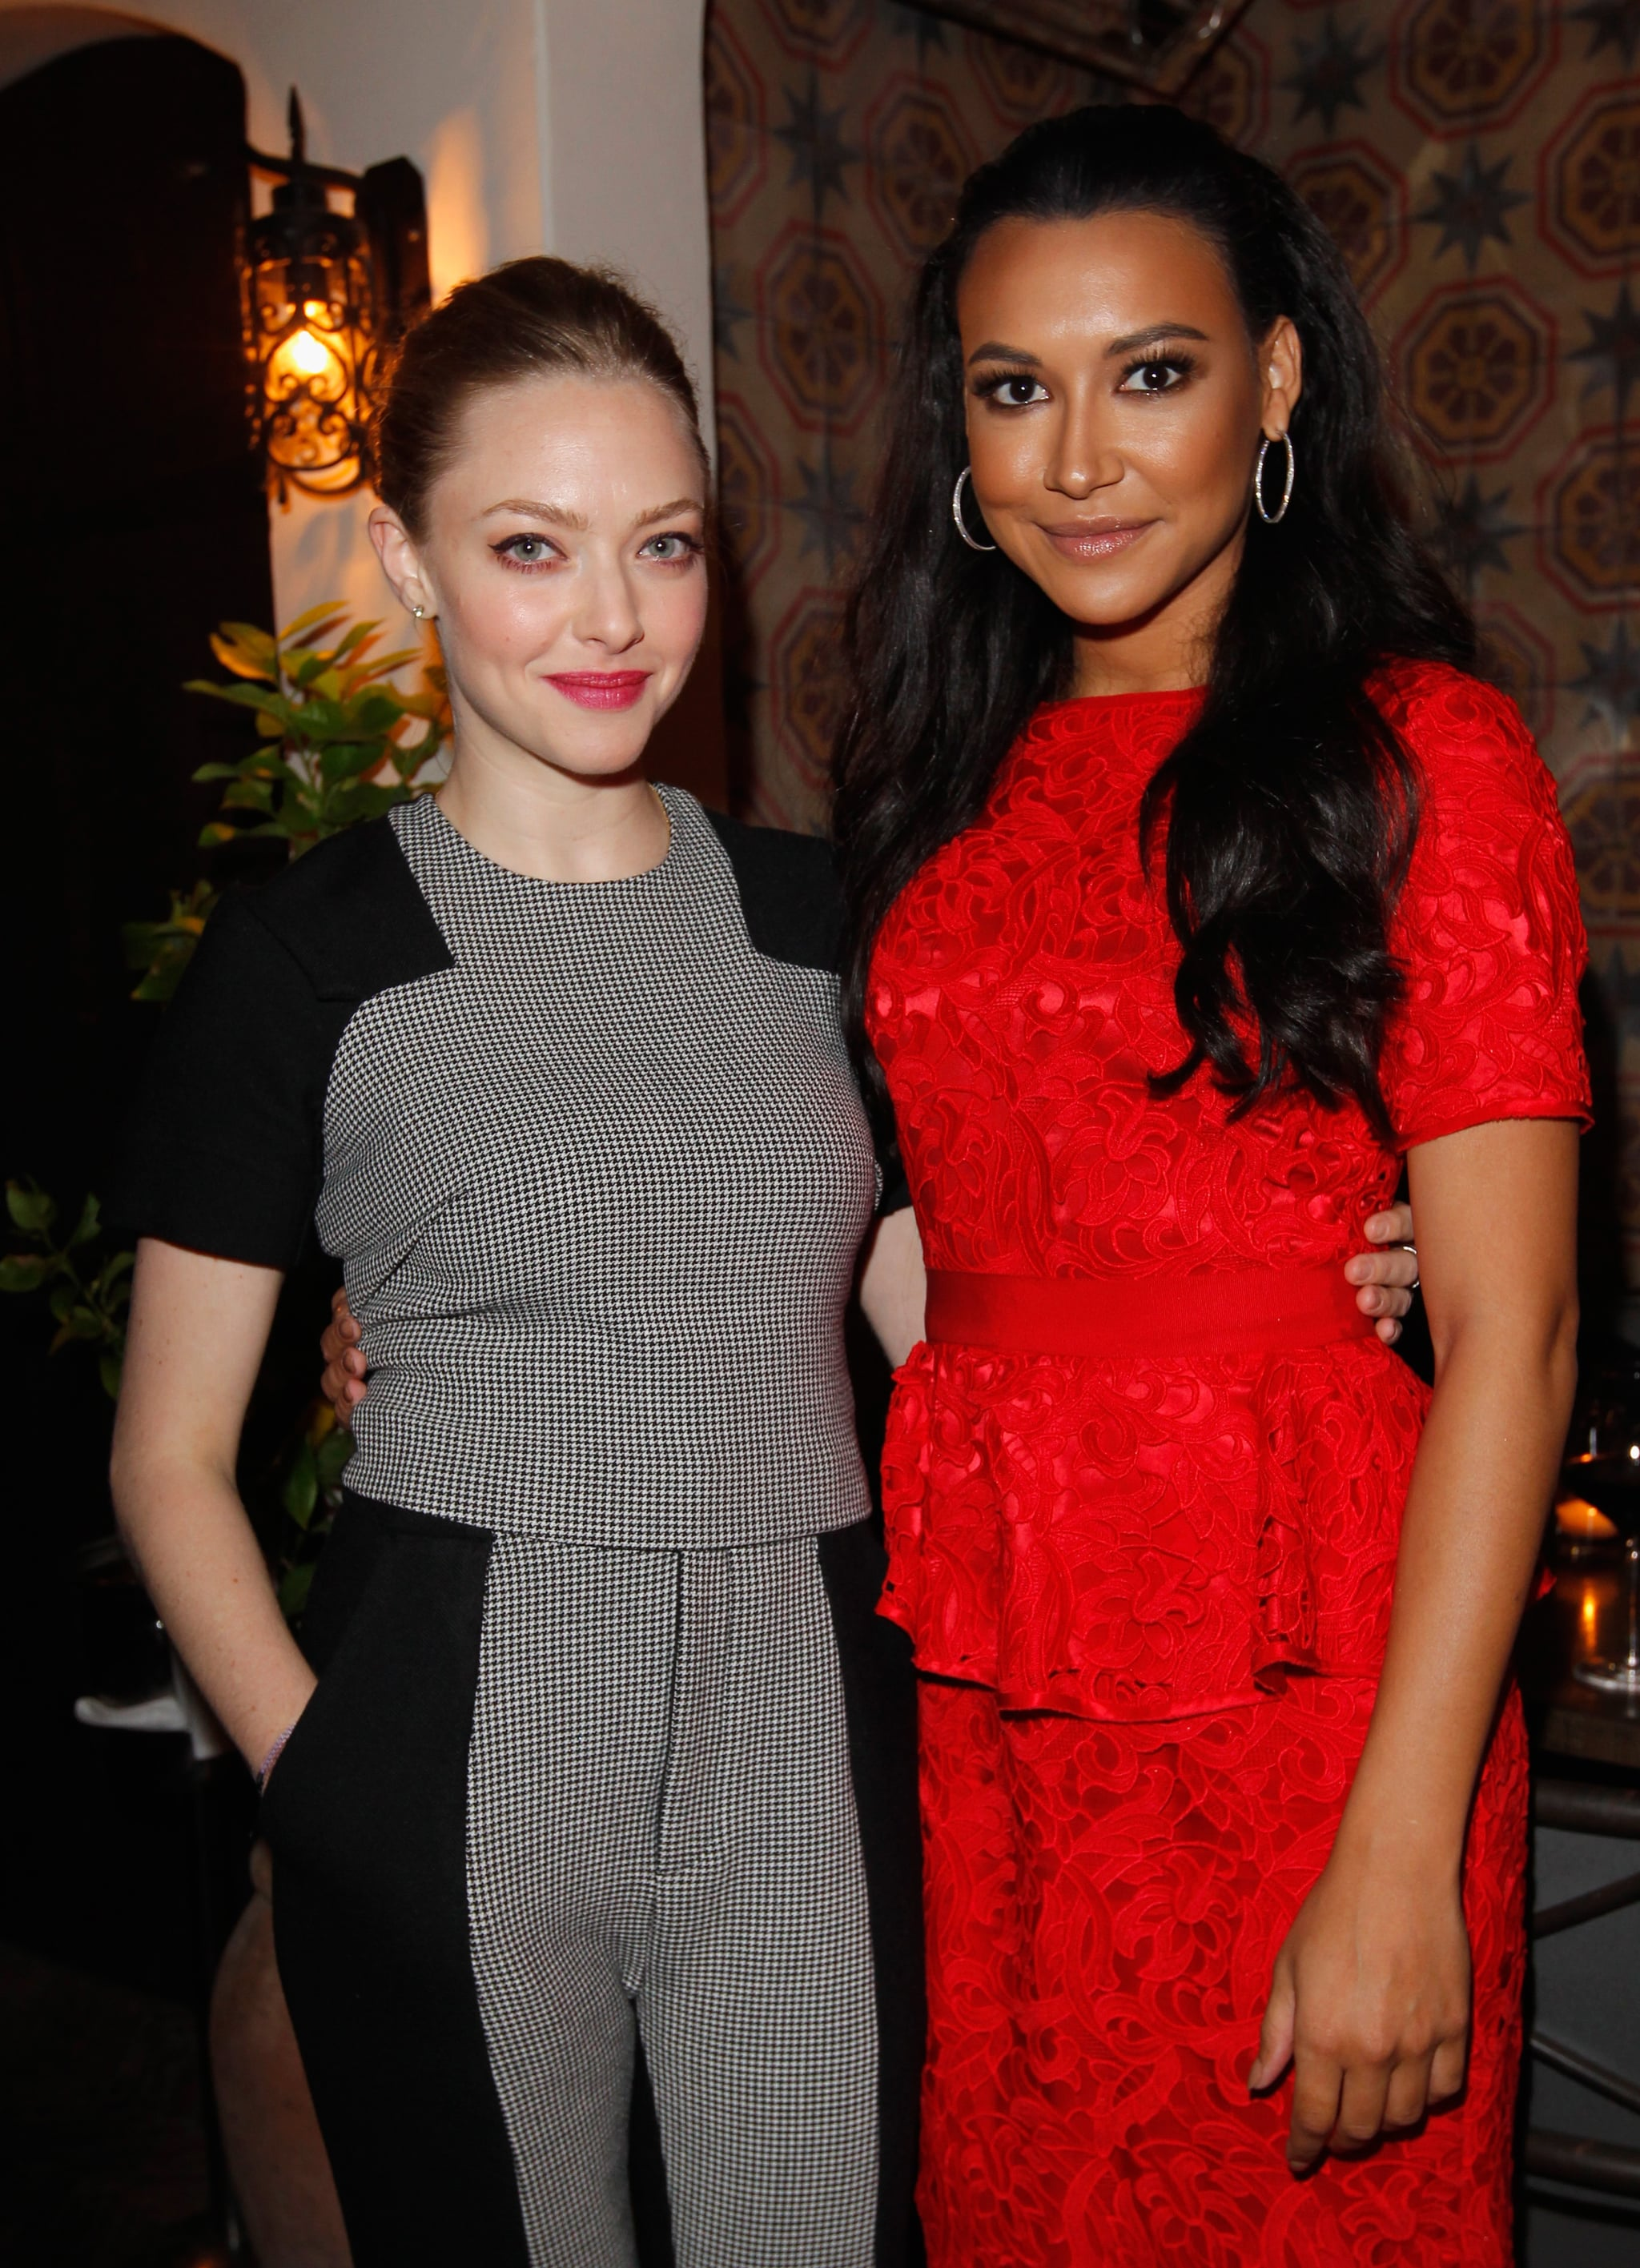 Amanda Seyfried and Naya River posed together at Allure magazine's Look Better Naked issue launch party.